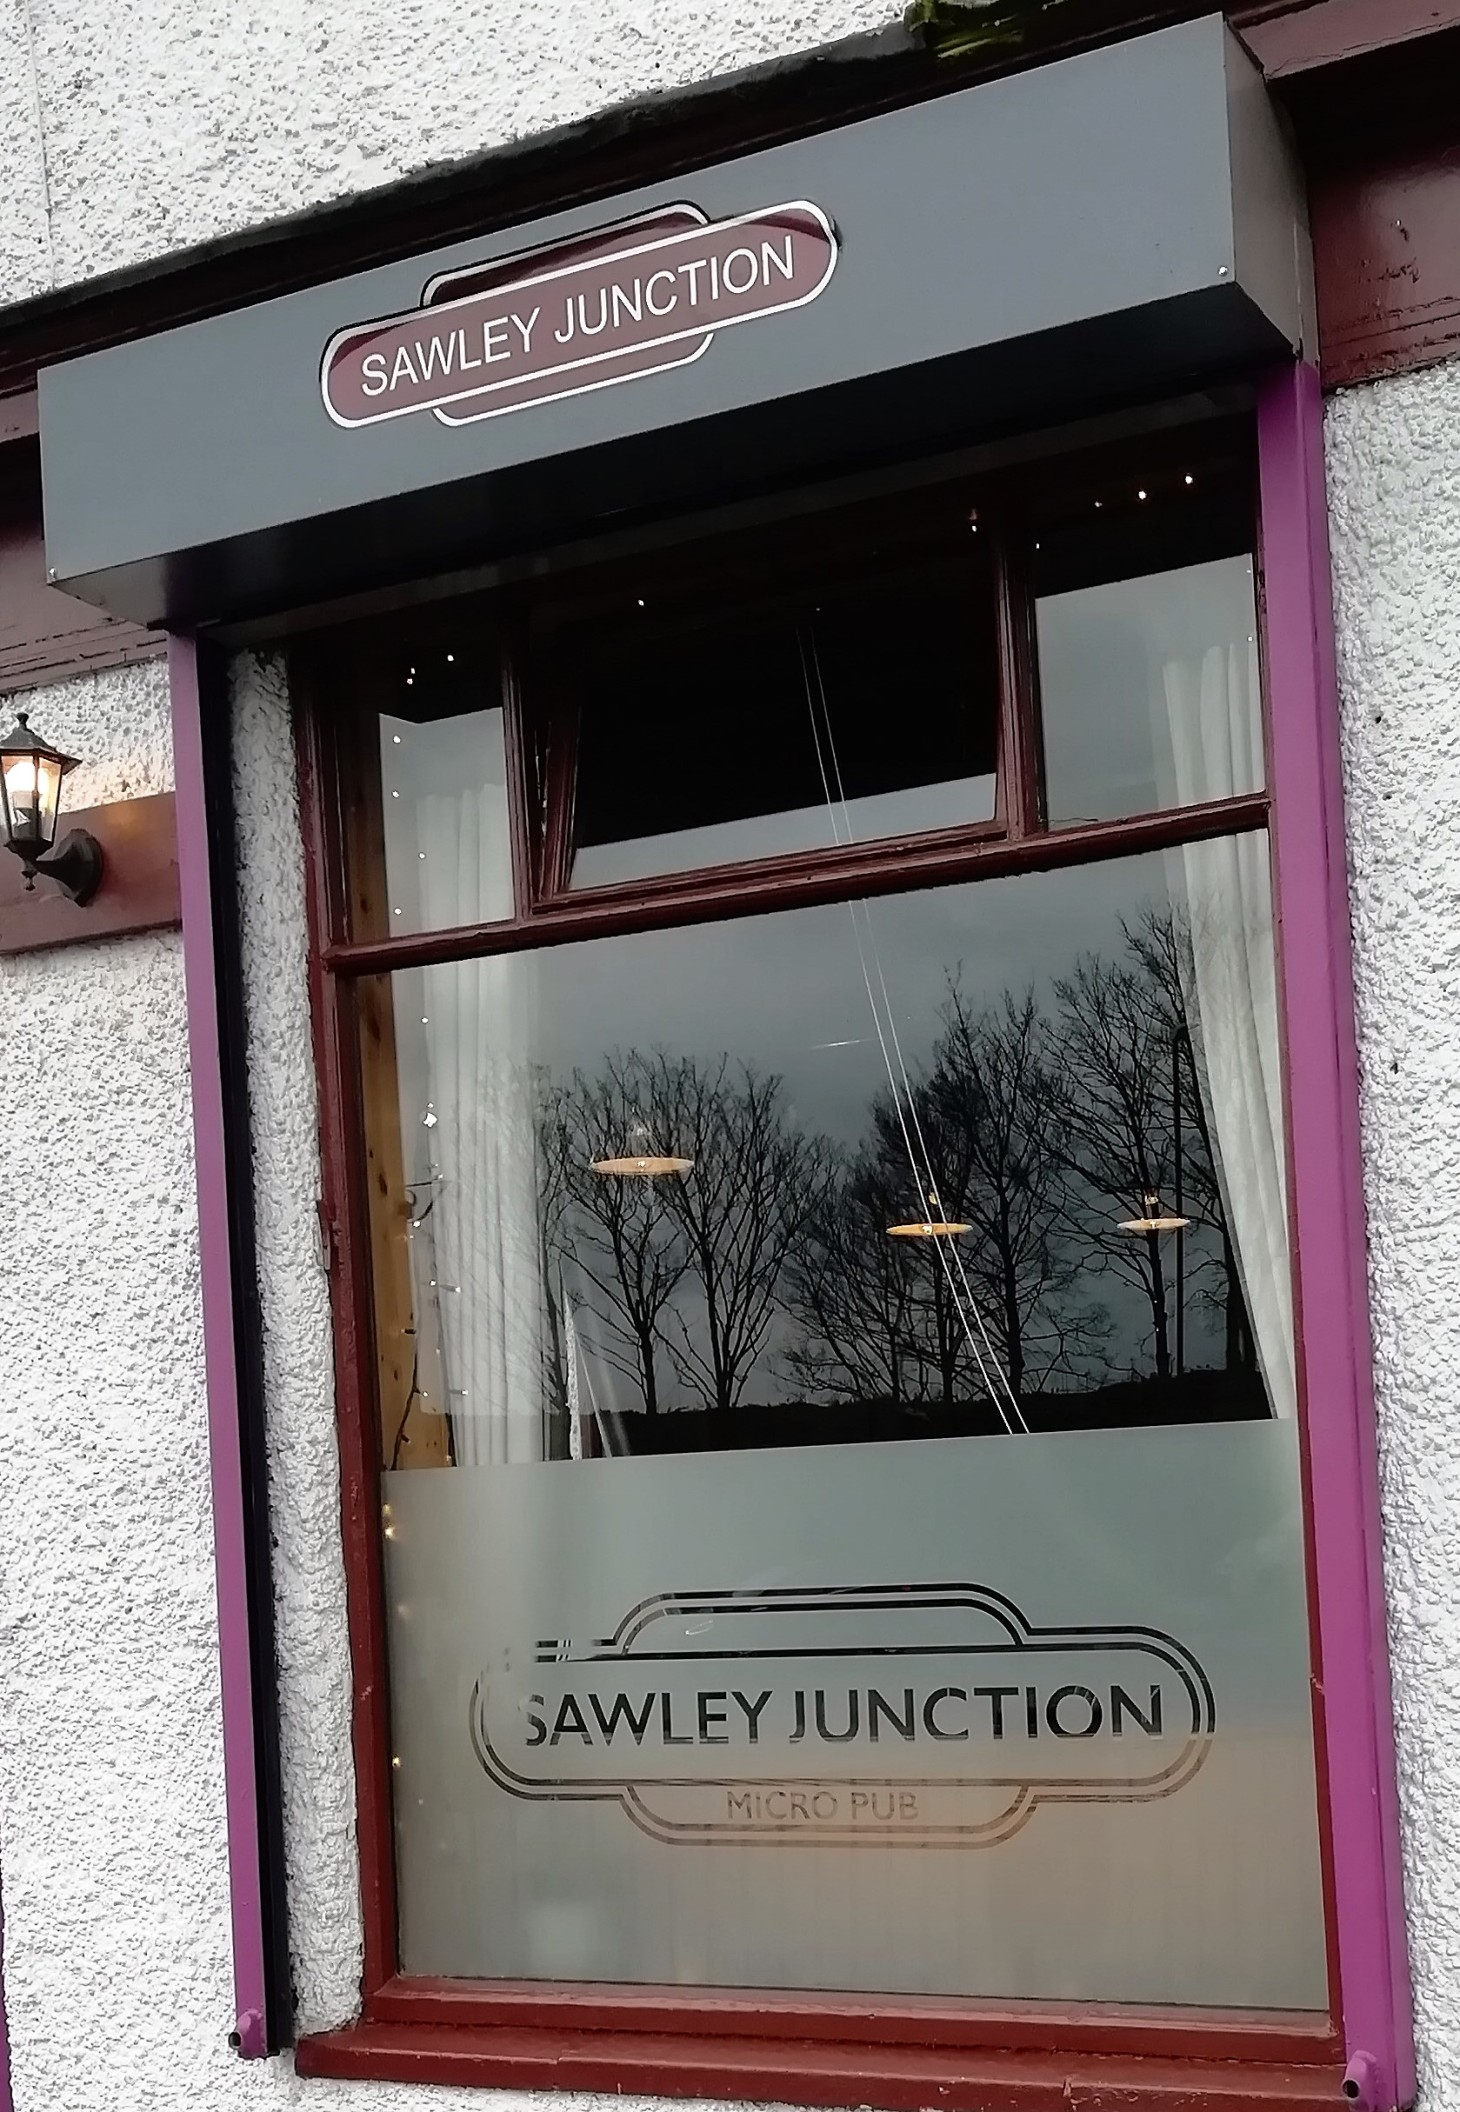 Sawley Junction 08.03.20 (18)